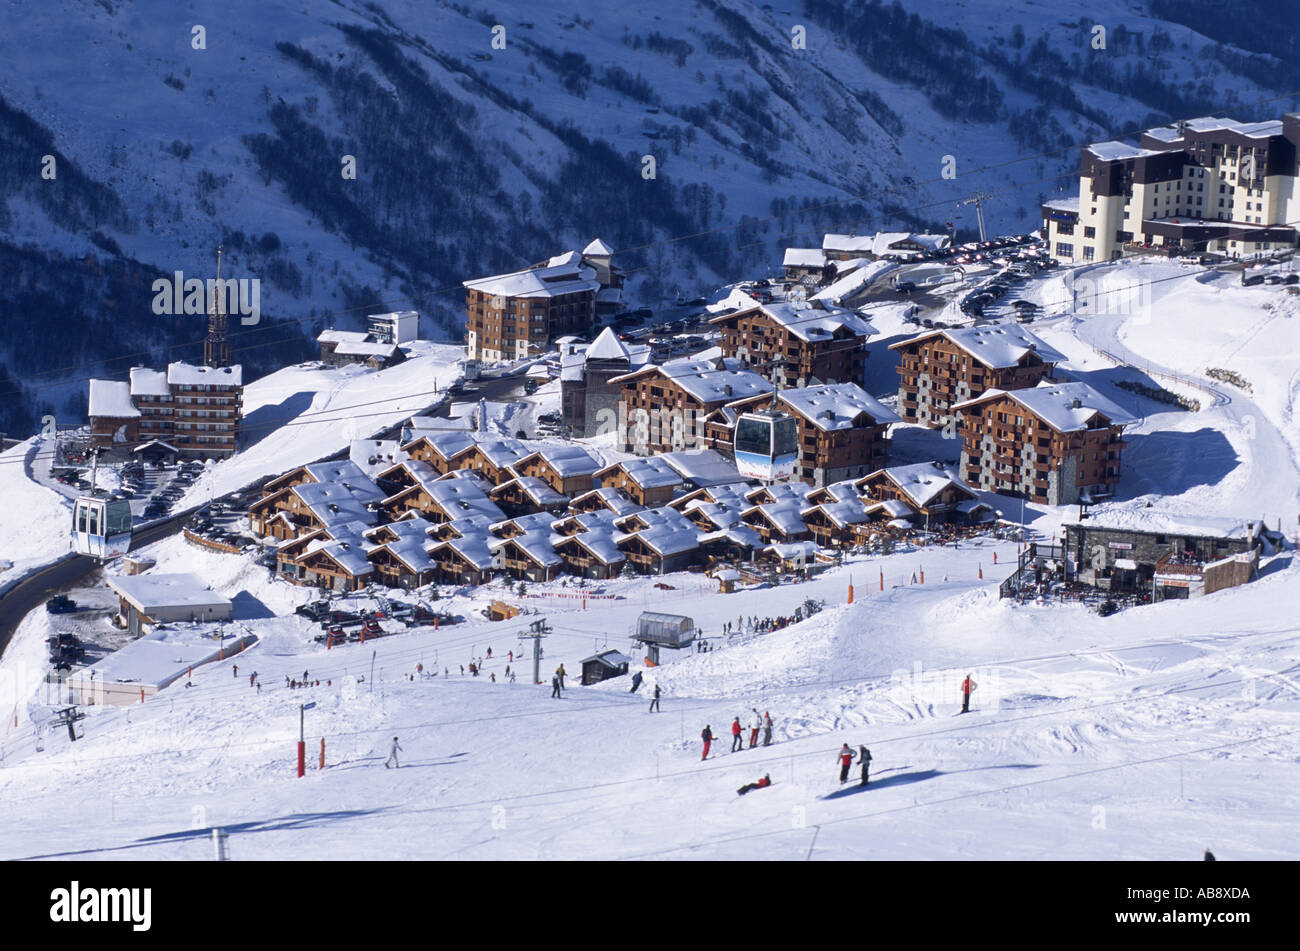 French ski resort Les Mnuires, bird's eye view, France, Rhne-Alpes, Les Mnuires. - Stock Image